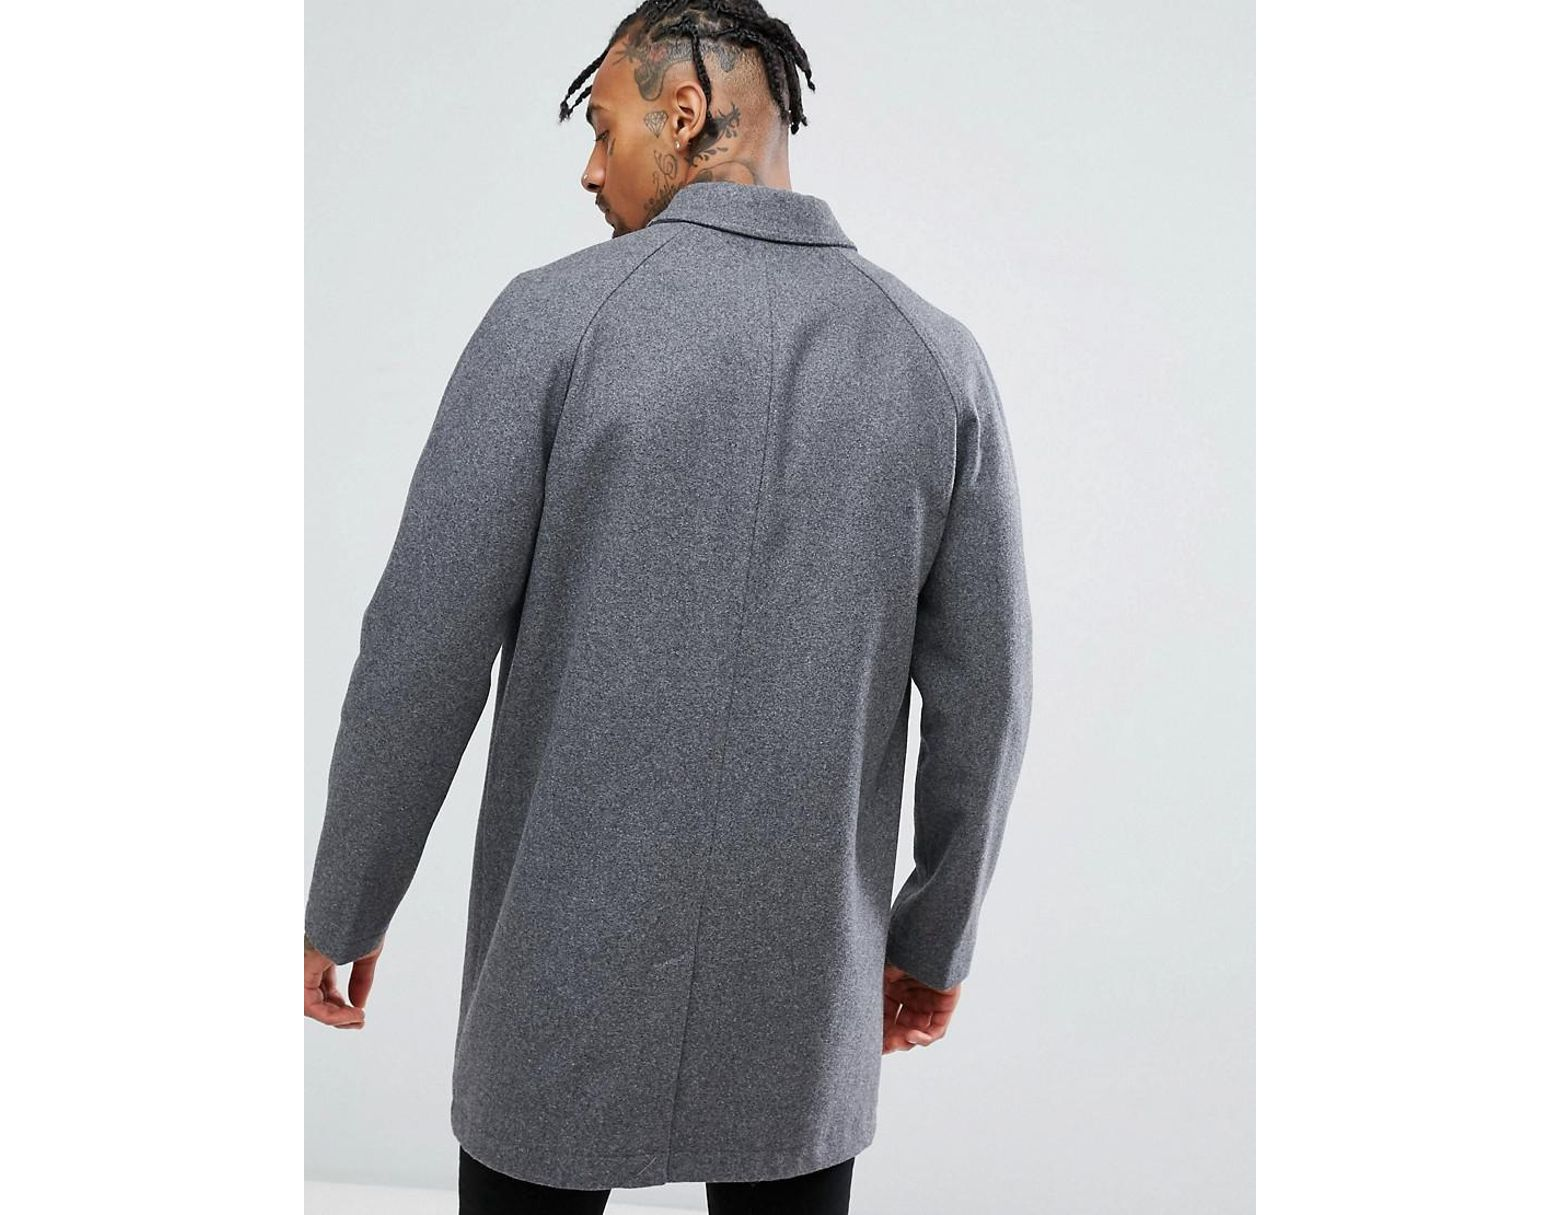 a6a09f54975e ASOS Wool Mix Trench Coat In Light Gray in Gray for Men - Lyst